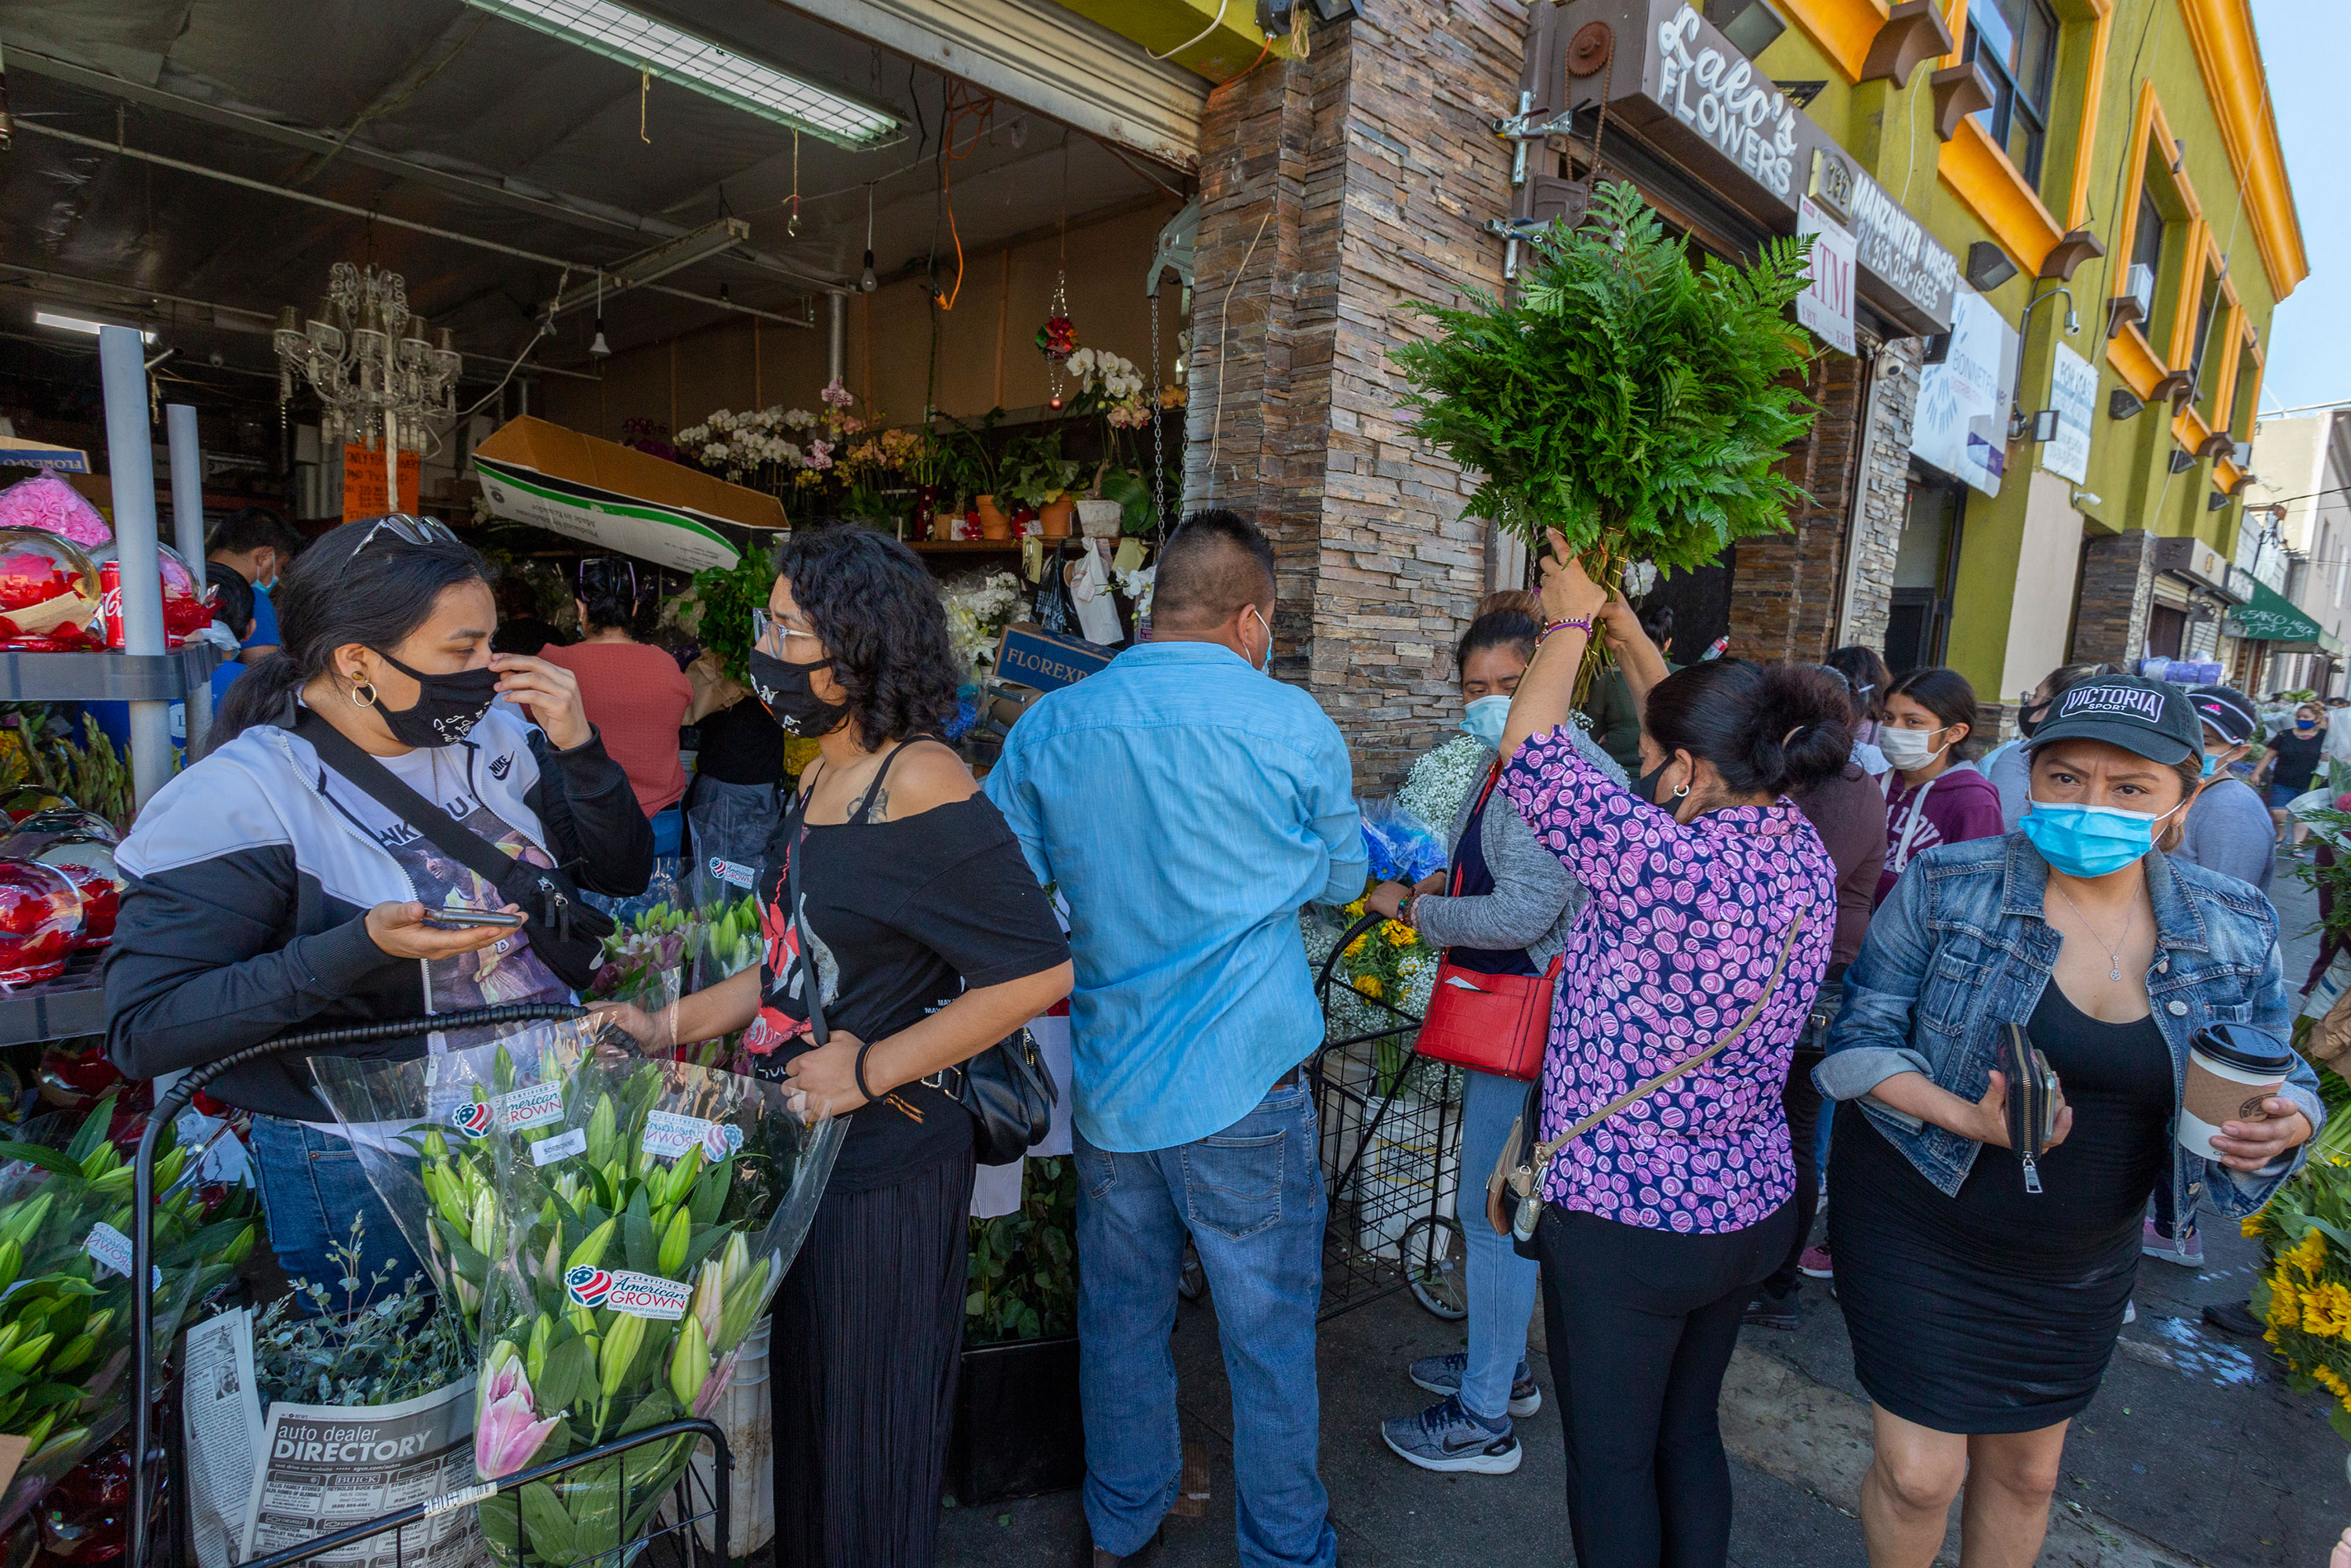 People mingle in close proximity to one another as businesses in the flower district reopen on May 8, in Los Angeles, California.